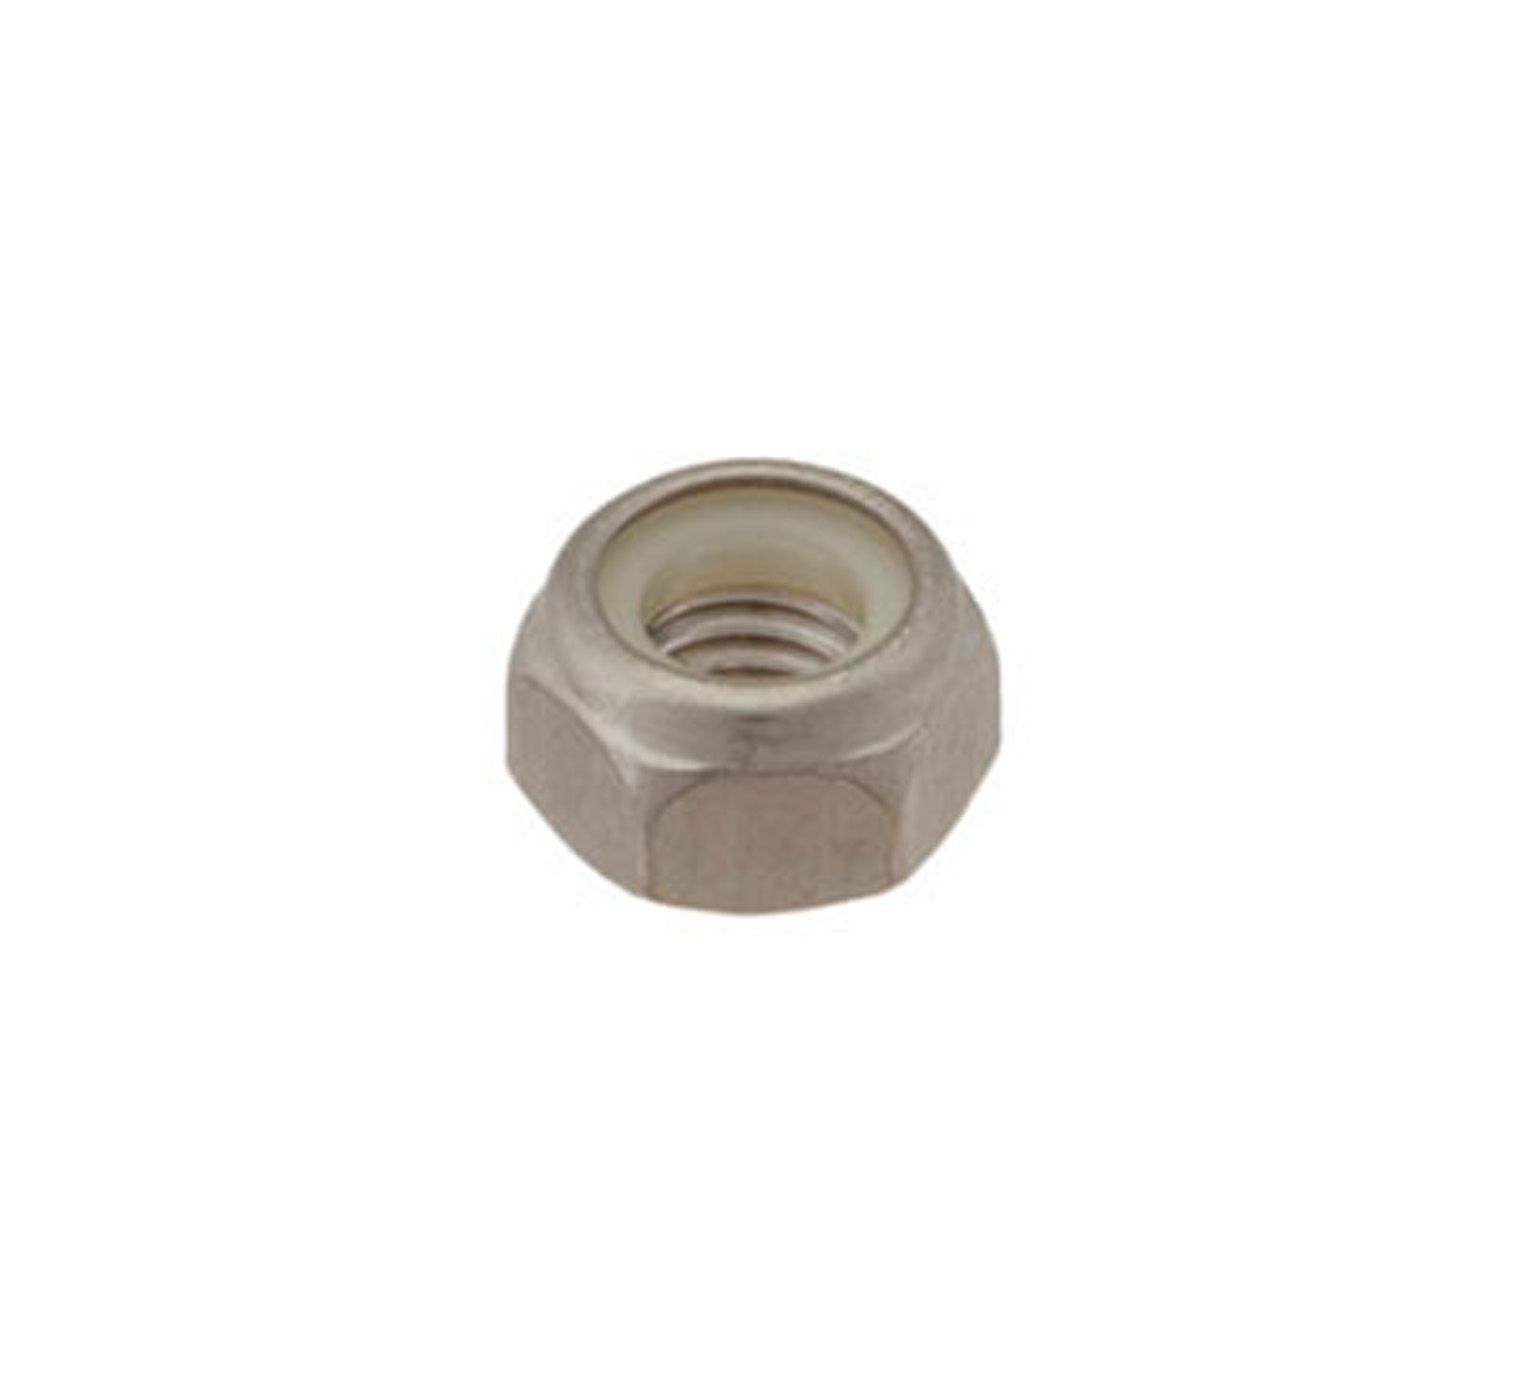 08713 Stainless Steel Hex Lock Nut - M8 Thread x 0.315 in alt 1